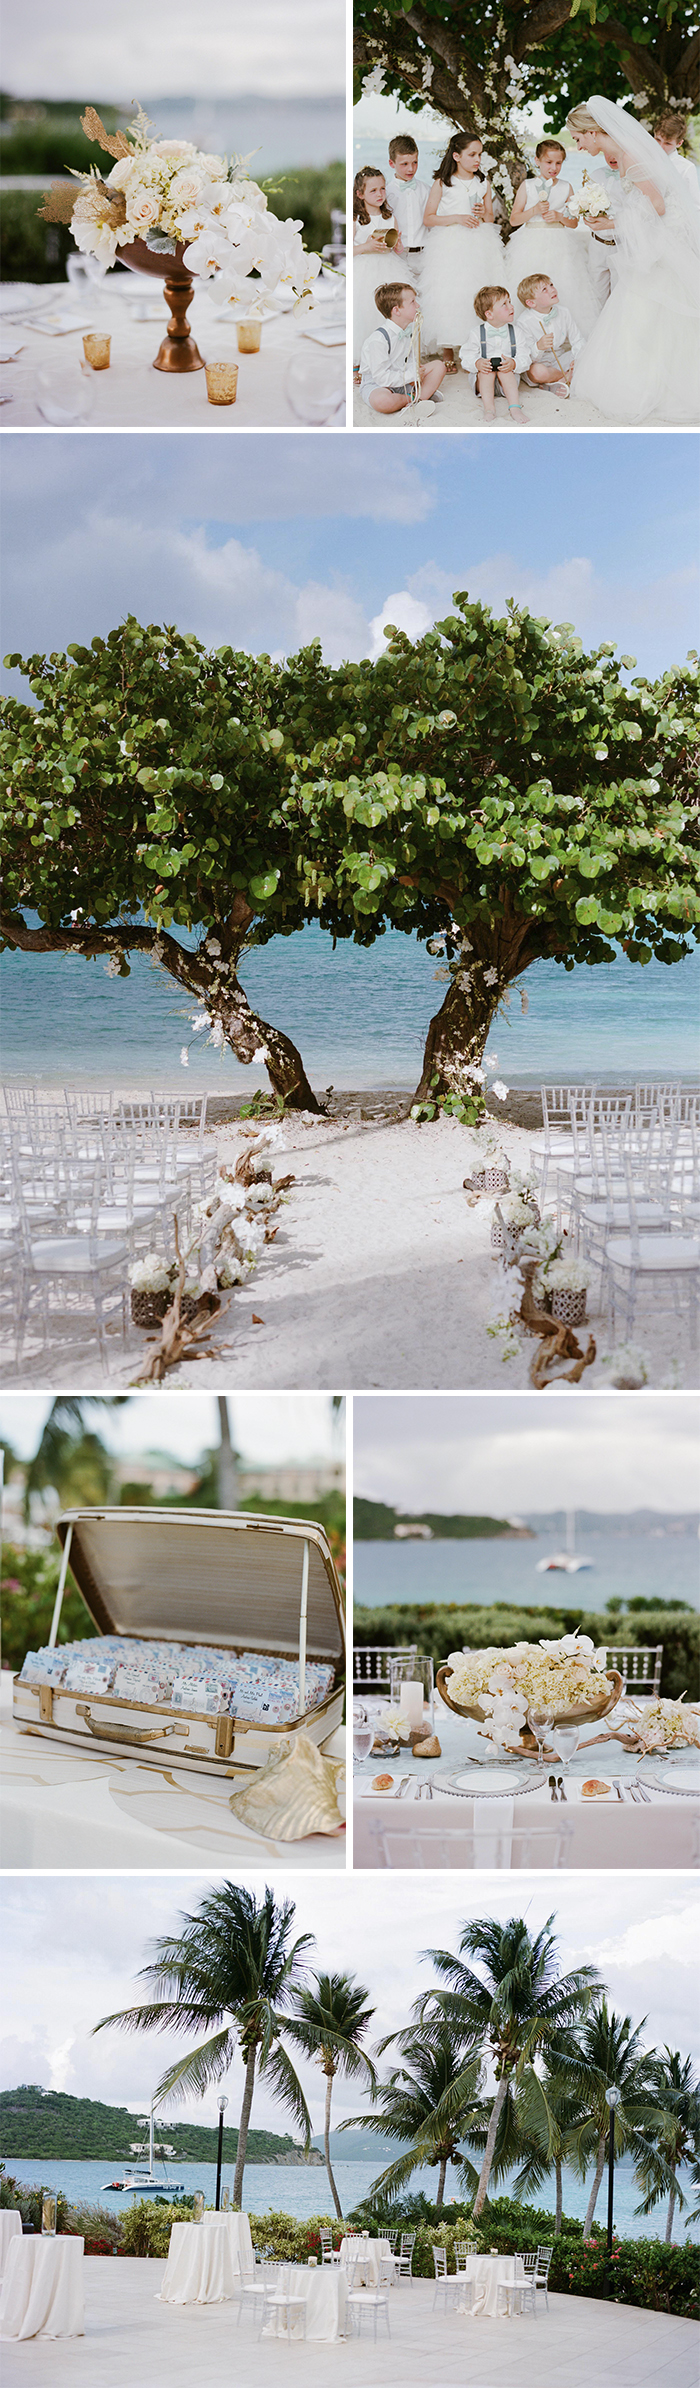 Sylvie Gil Destination Wedding photographer